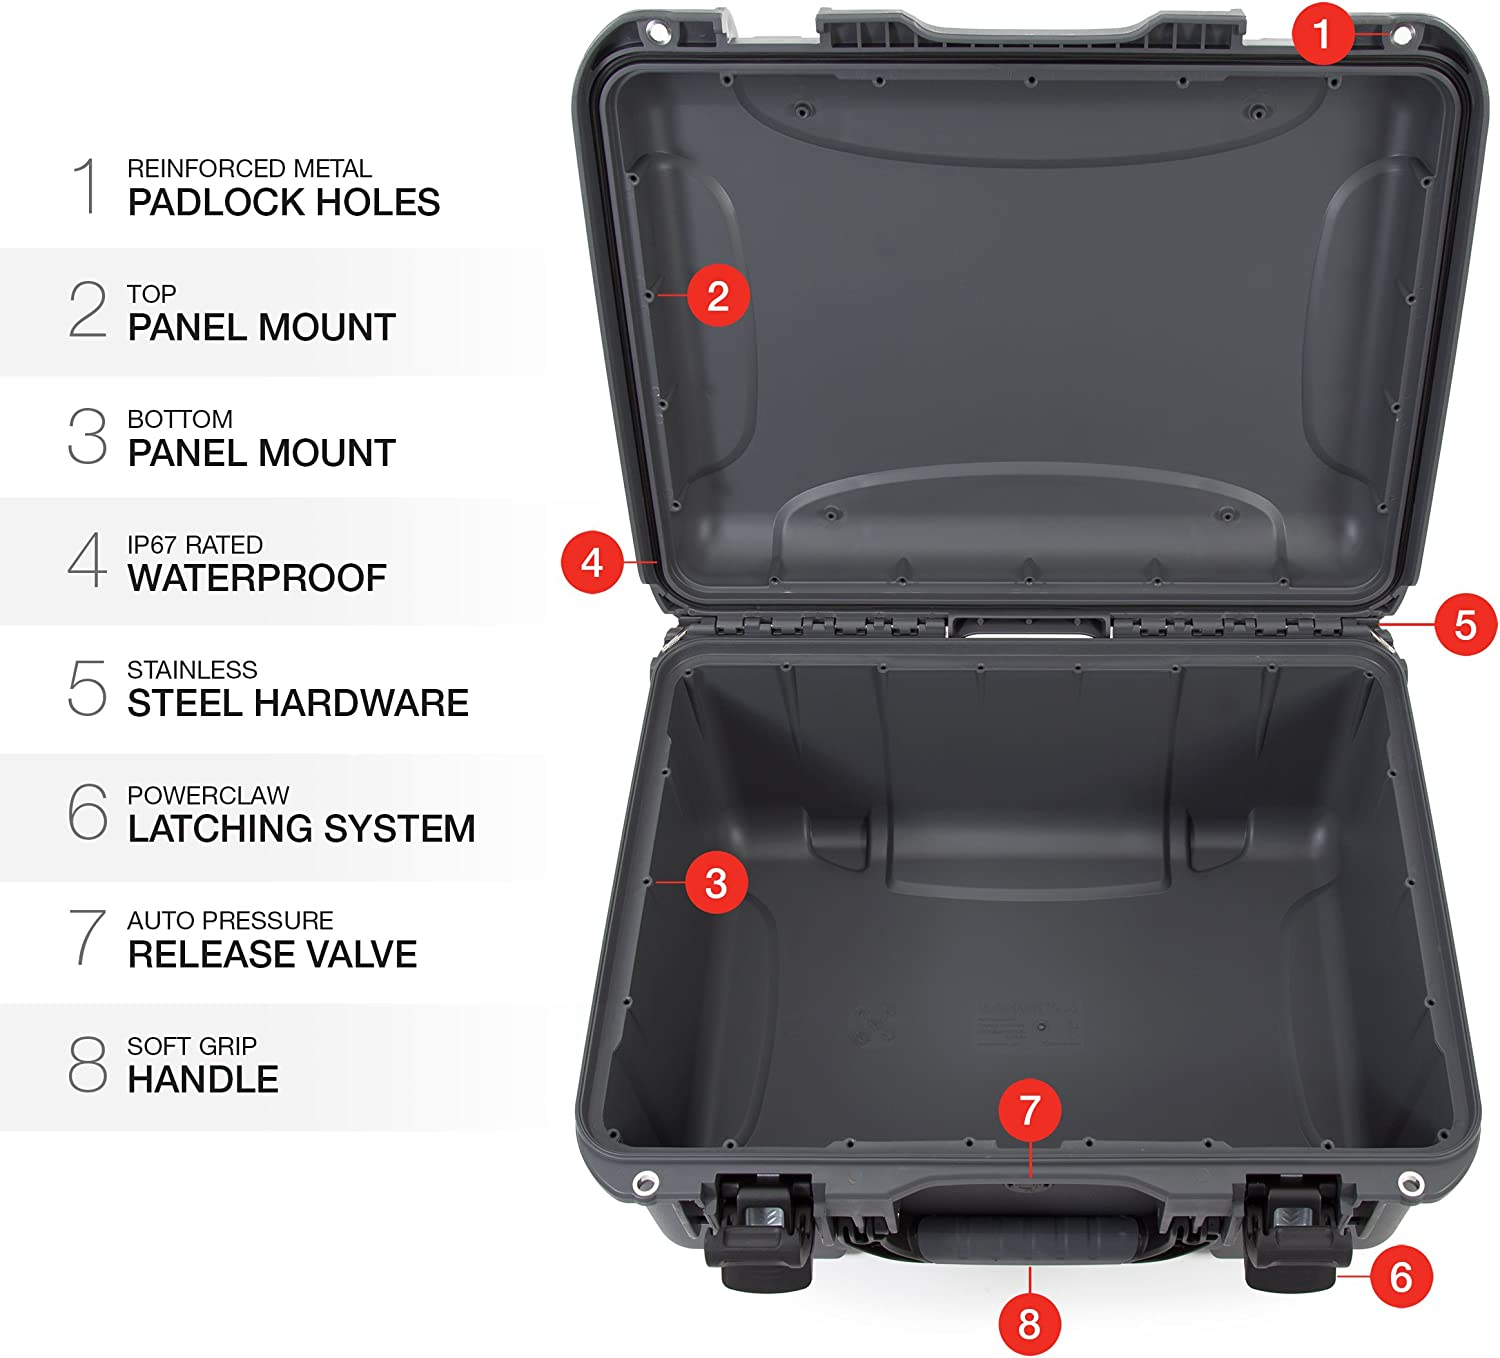 Graphite Nanuk 933 Waterproof Hard Case with Padded Dividers